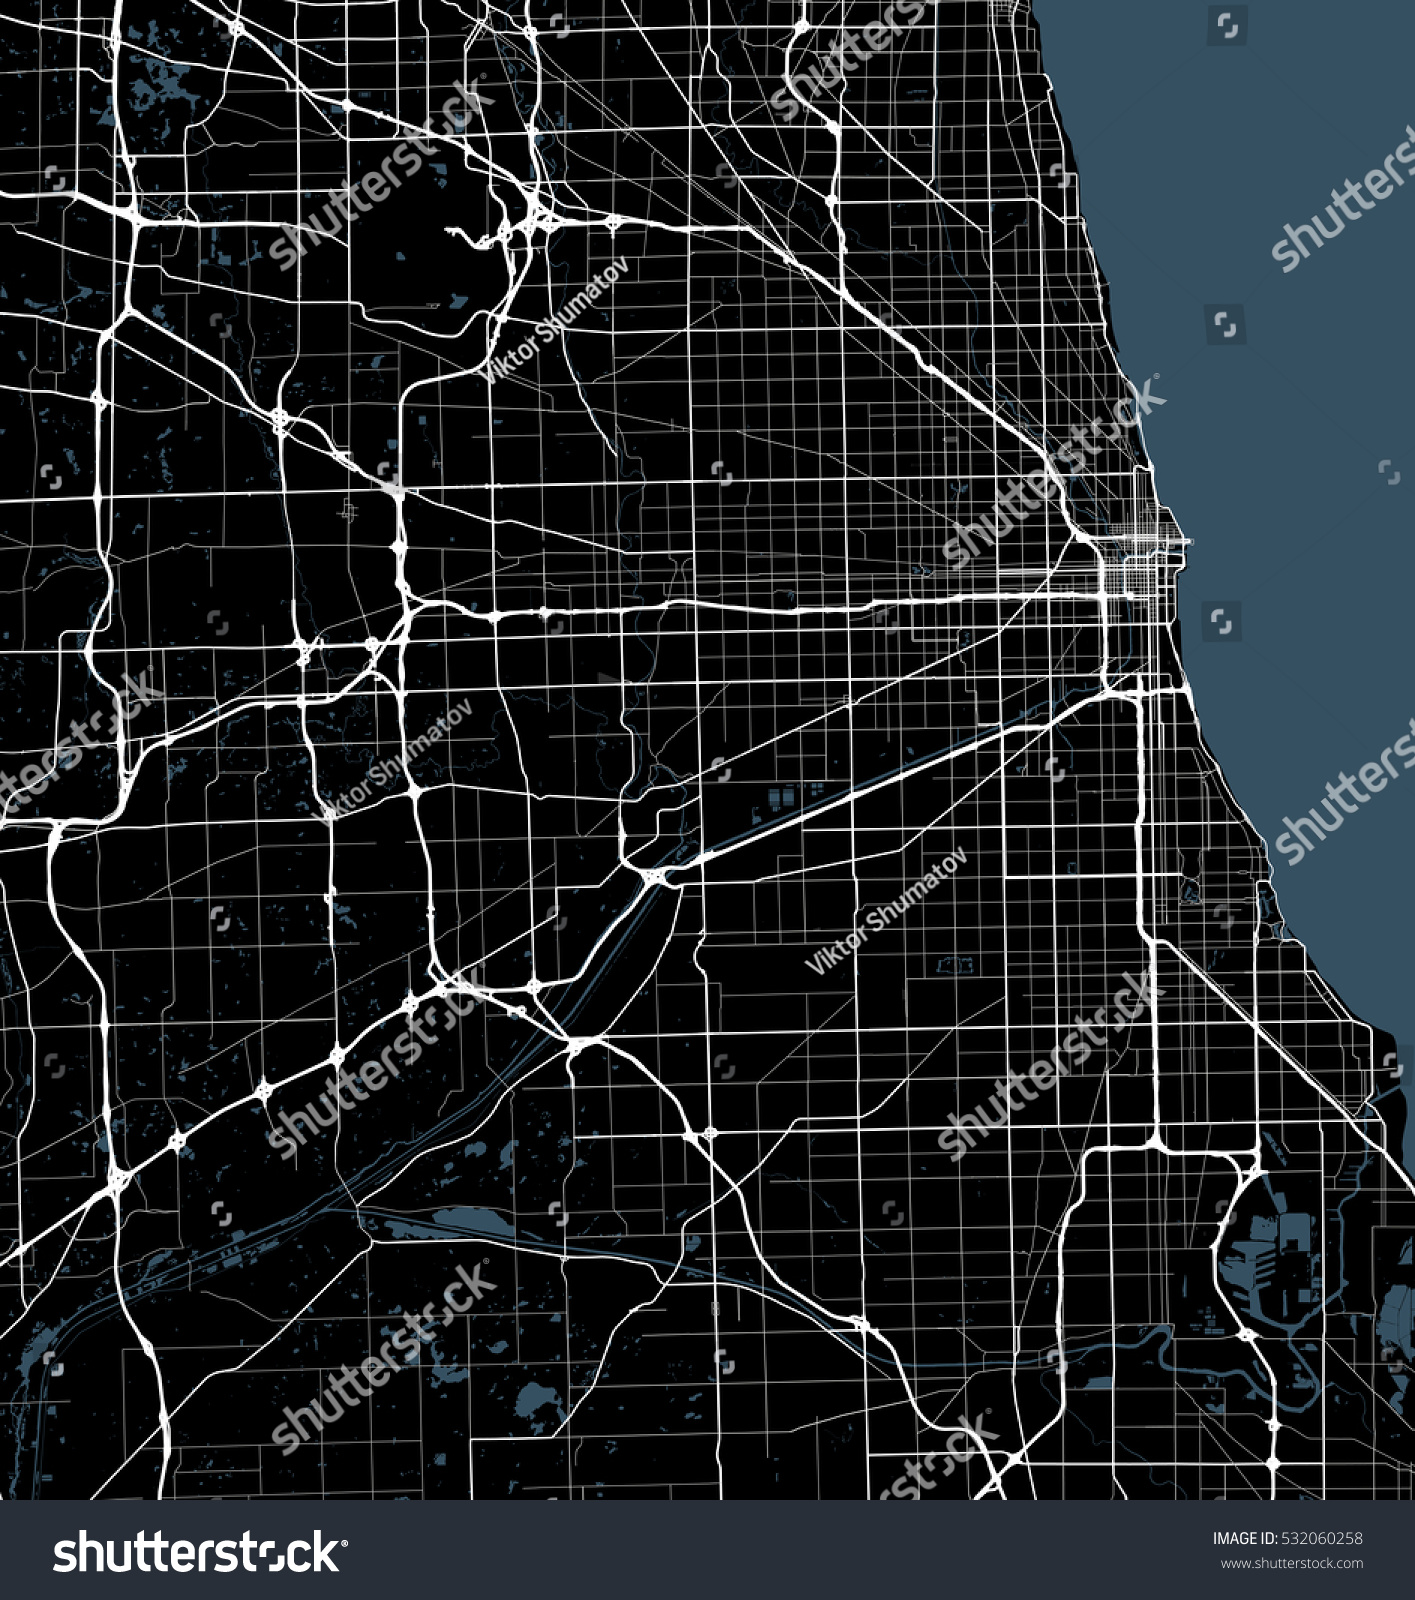 Illinois Geography Black And White